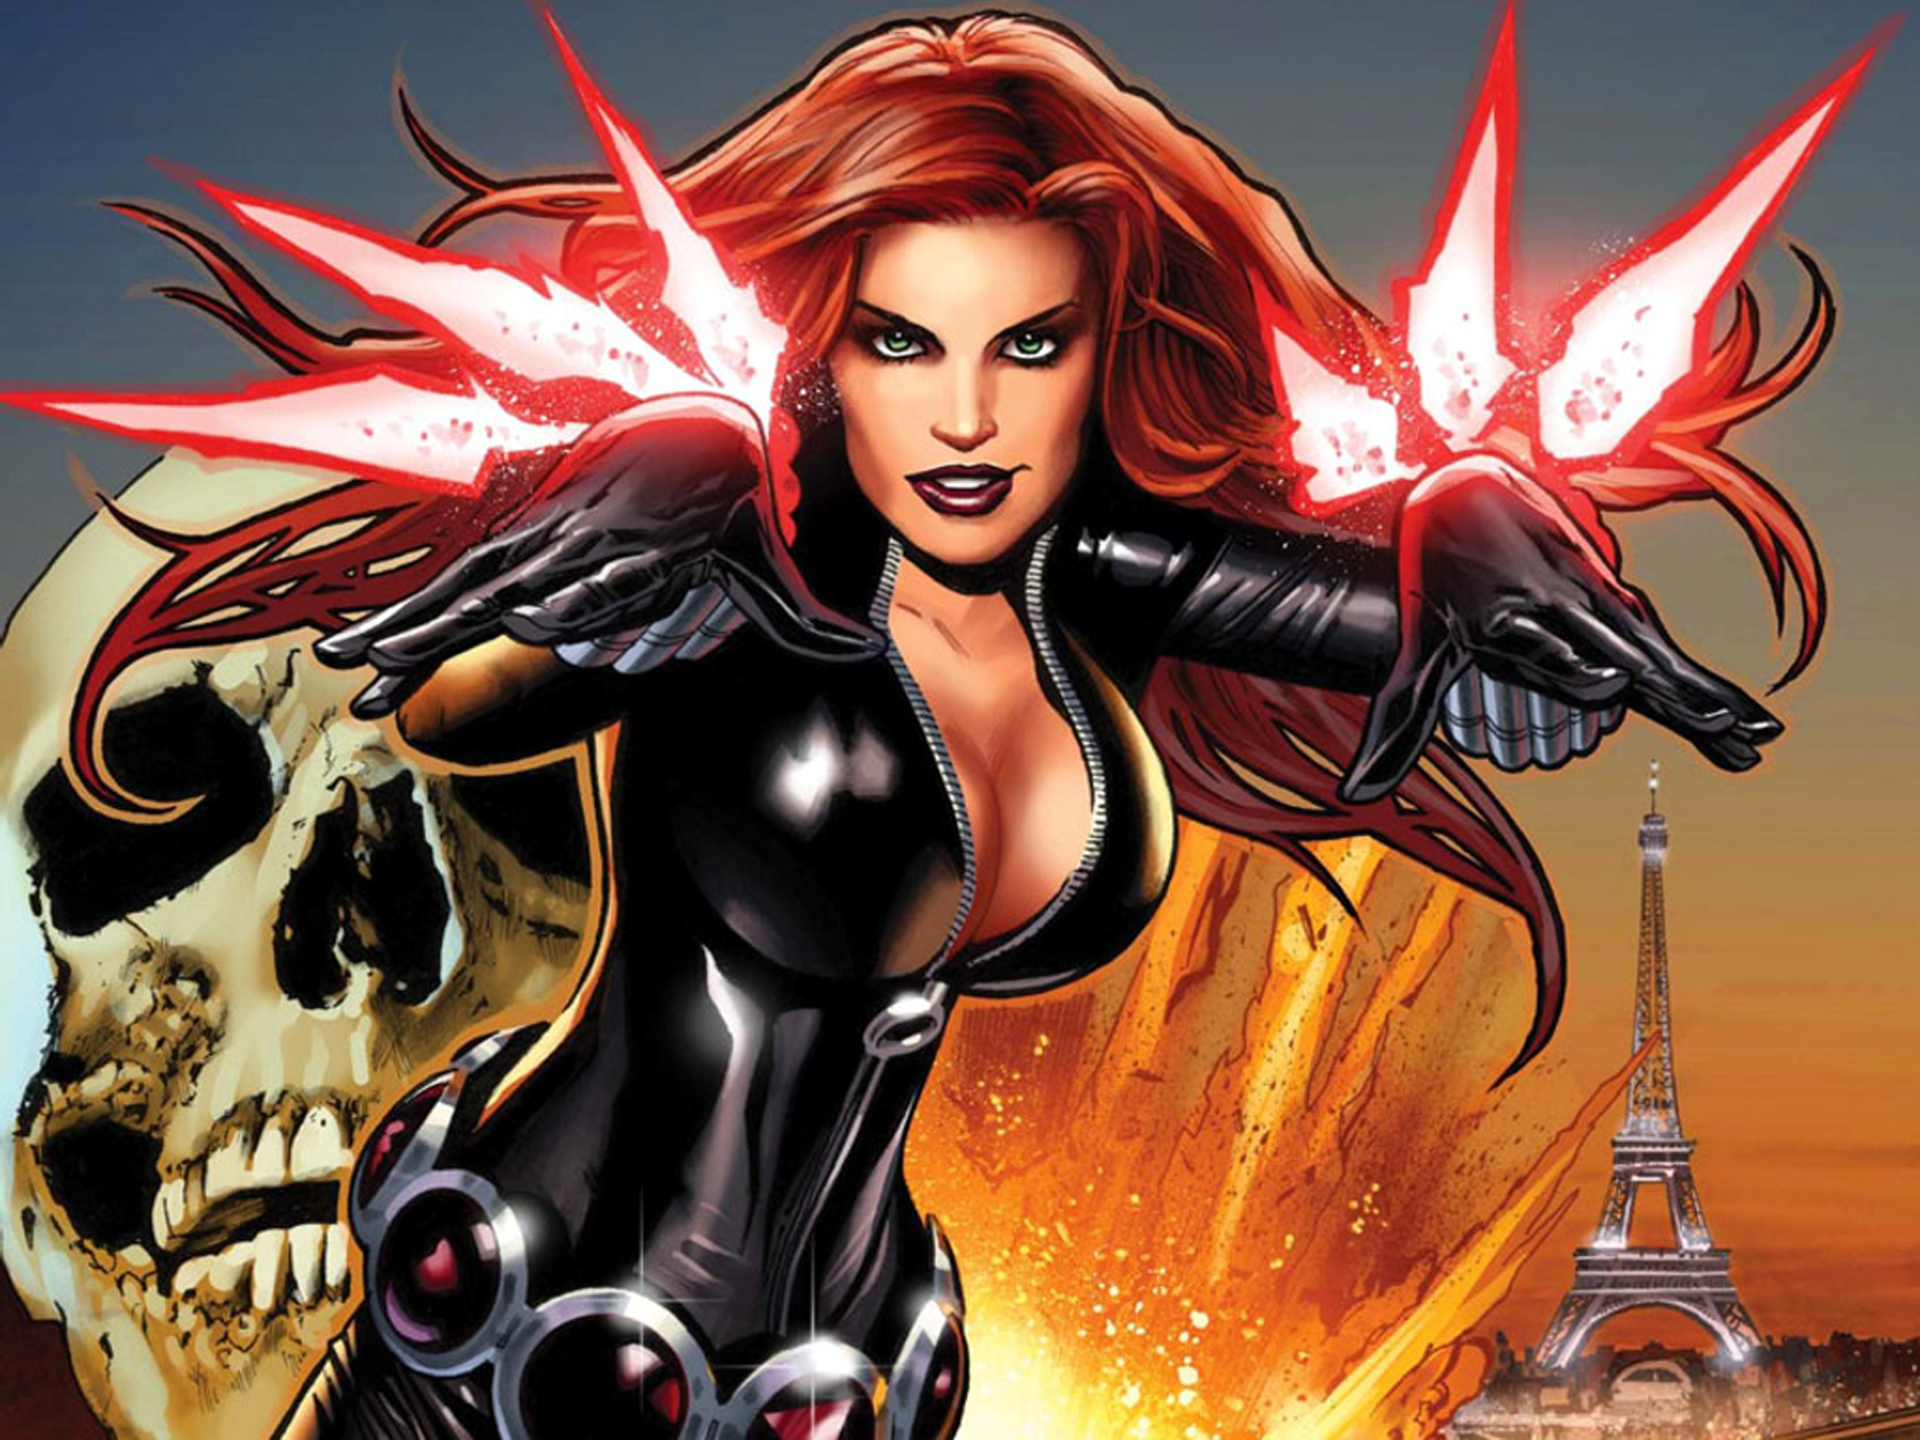 Black-Widow-Cartoon-Wallpaper • Chrome Geek